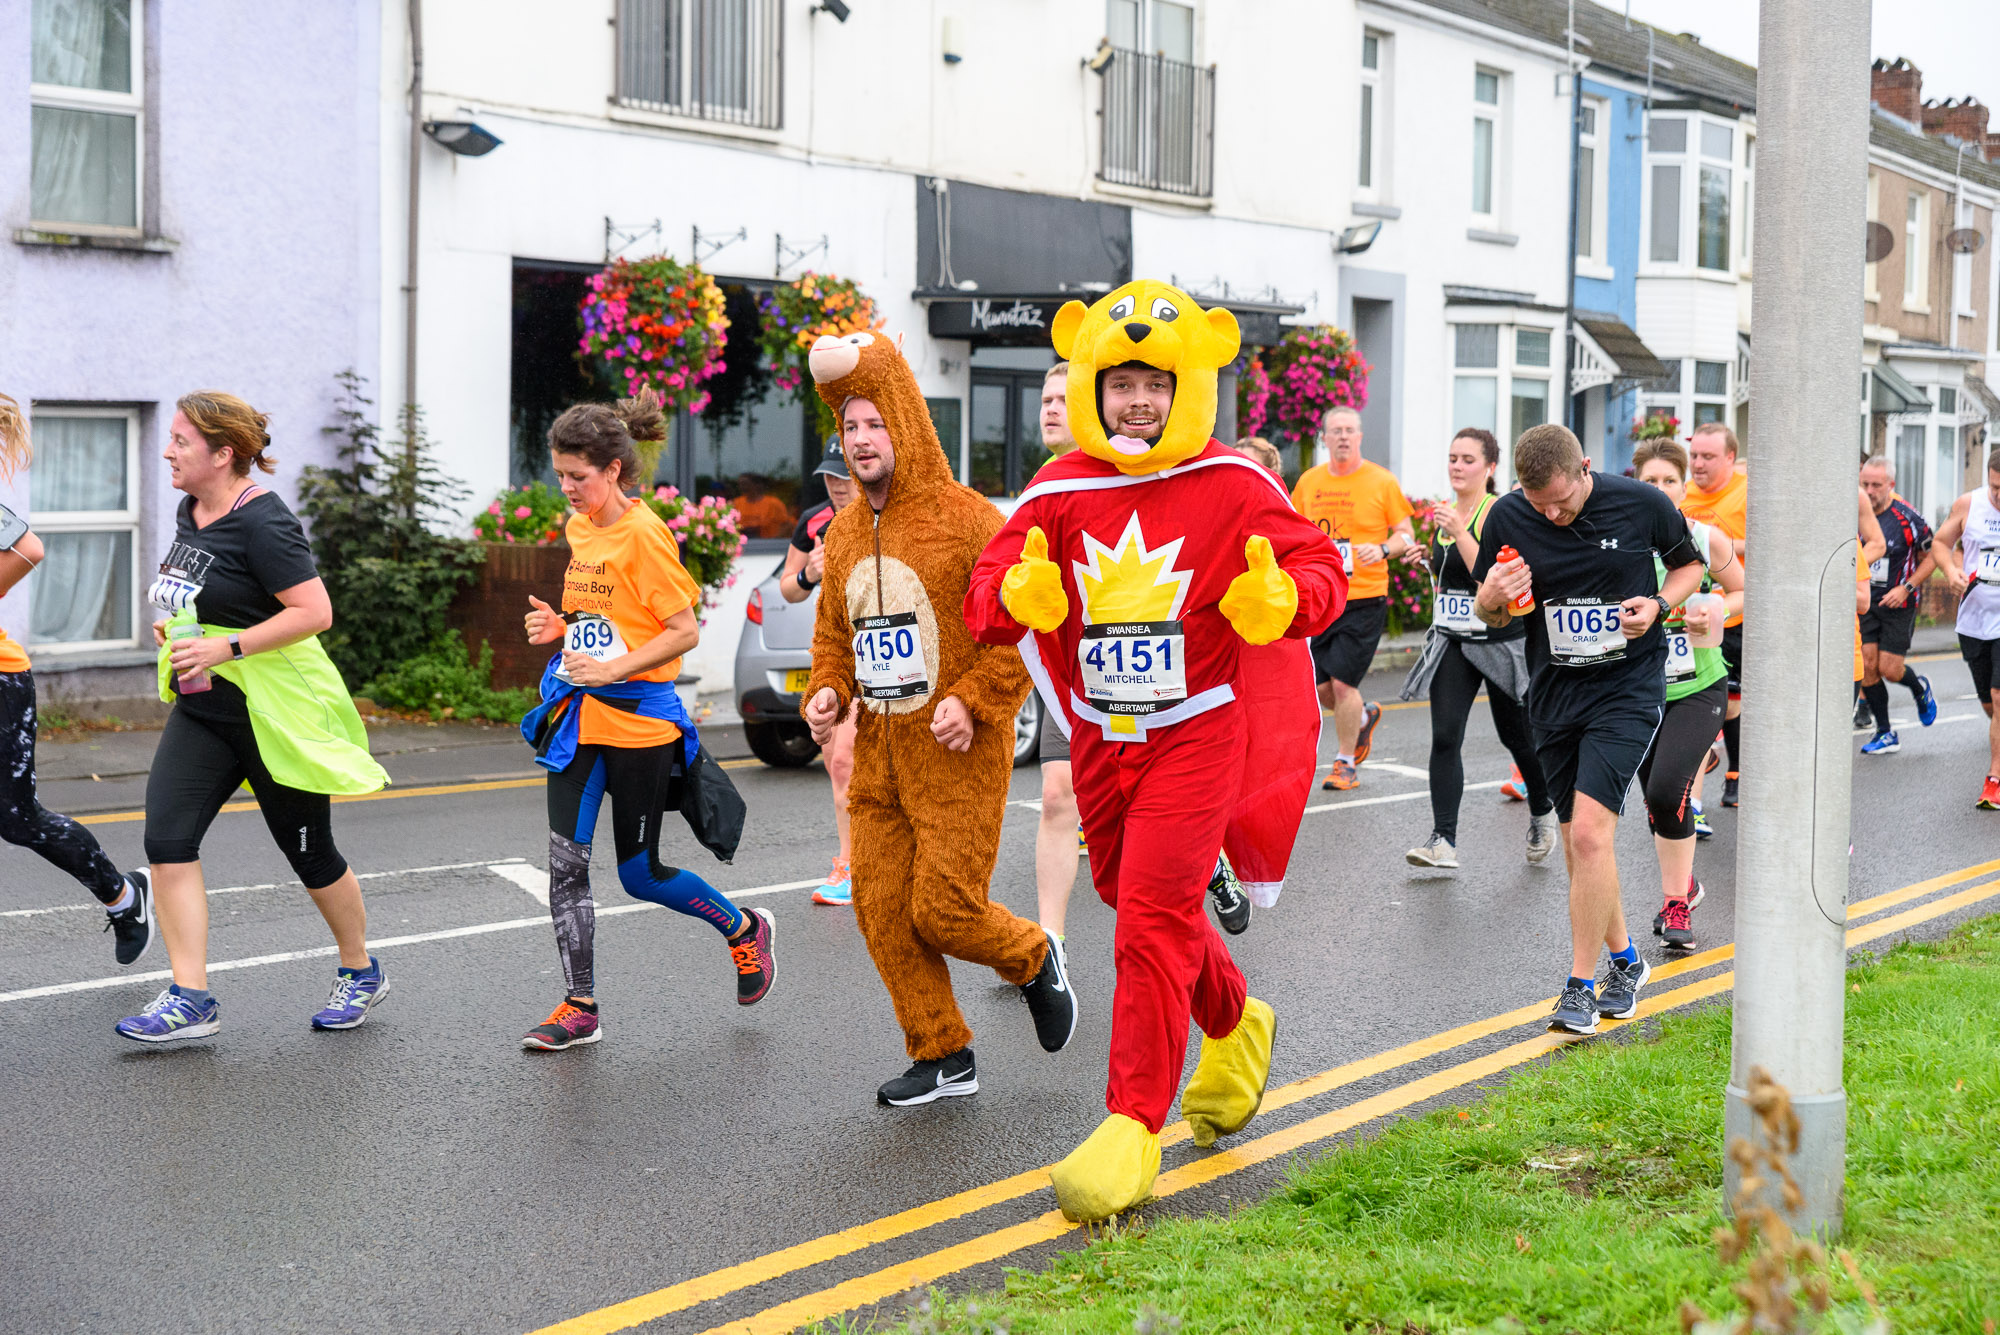 Swansea Bay 10k 2018 Photographs